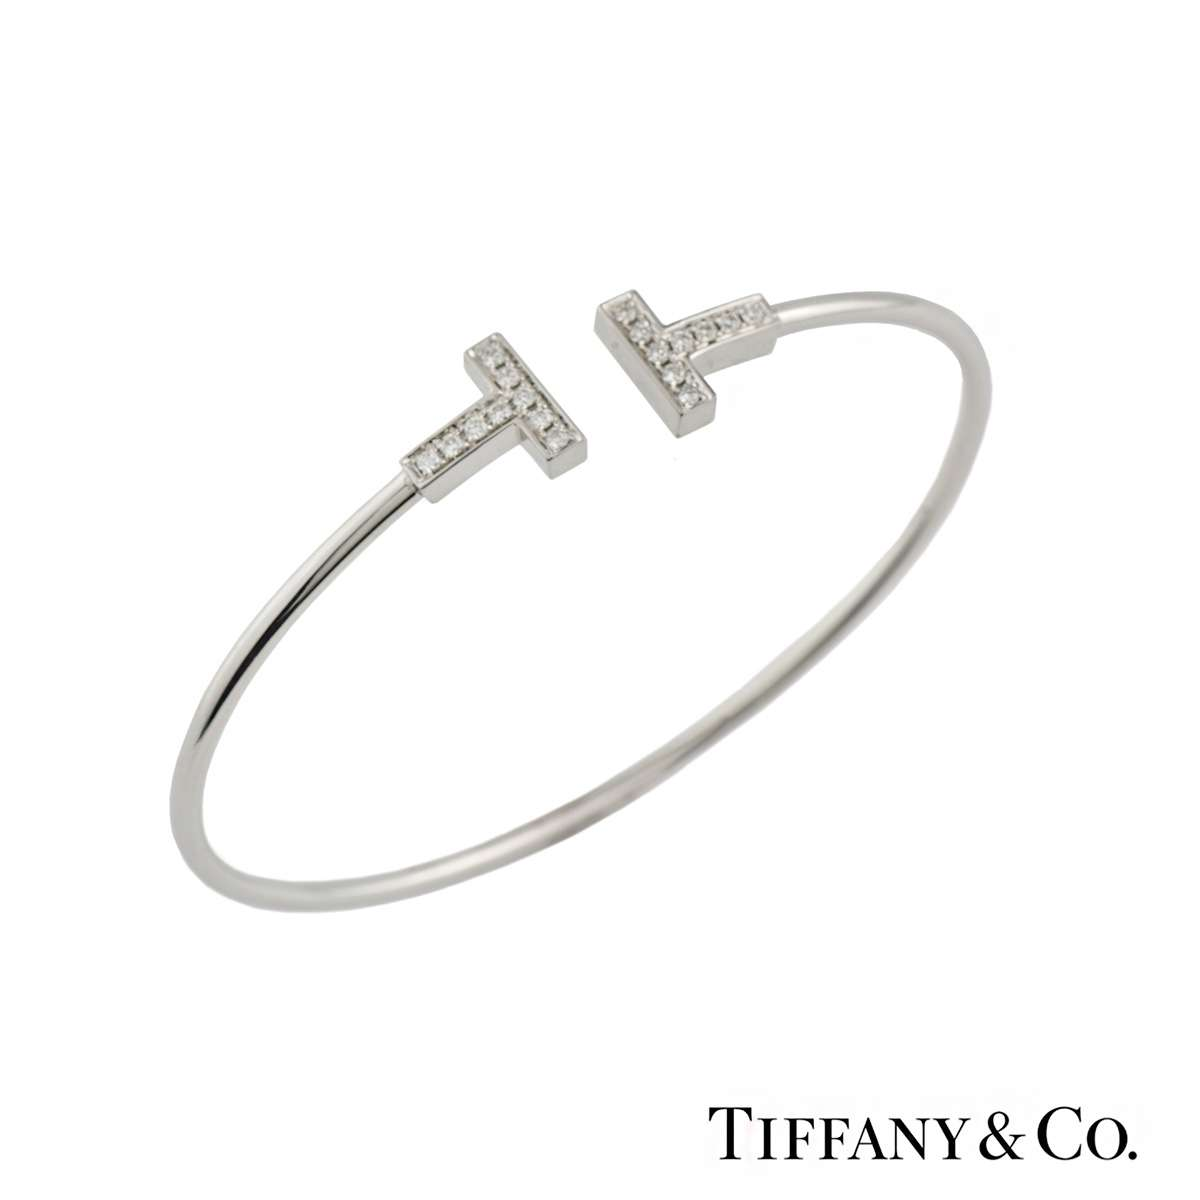 Tiffany & Co. Tiffany T Wire Bracelet